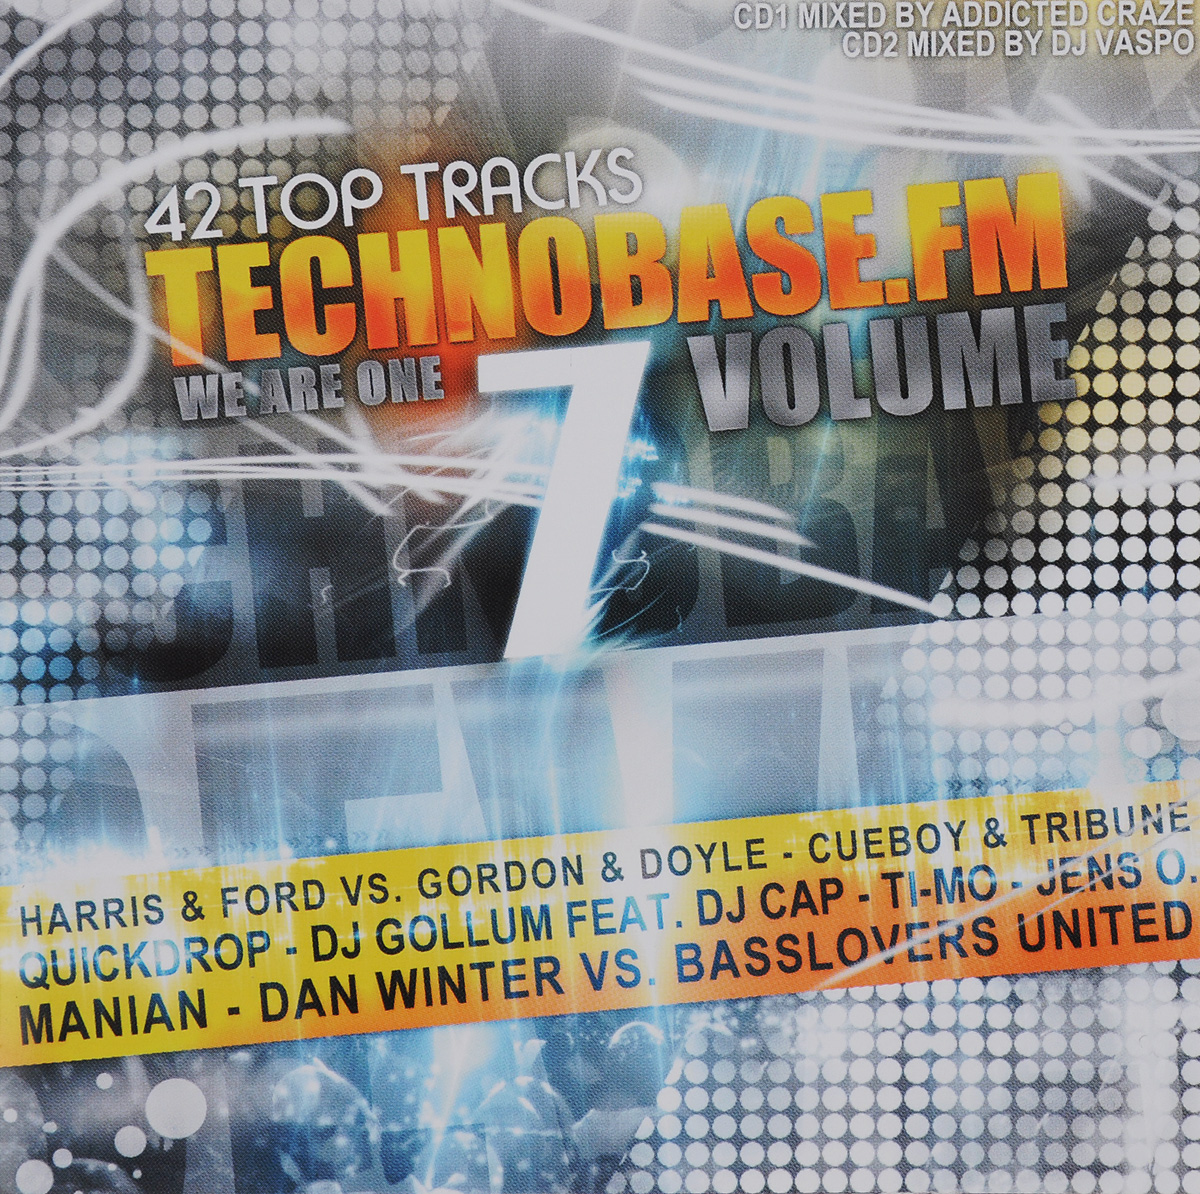 Addicted Craze,L.A.R.S,Cueboy,Tribune,Lolita Jolie,Dj Gollum,Dj Cap,Malu Project,James Stefano,Dj Analyzer Technobase.FM. We Are One. Volume 7 (2 CD) 6w led bola magica sonido mando a distancia dj shop dj efectos luces efectos luz sonido eventos fiestas 7 dmx512 canales